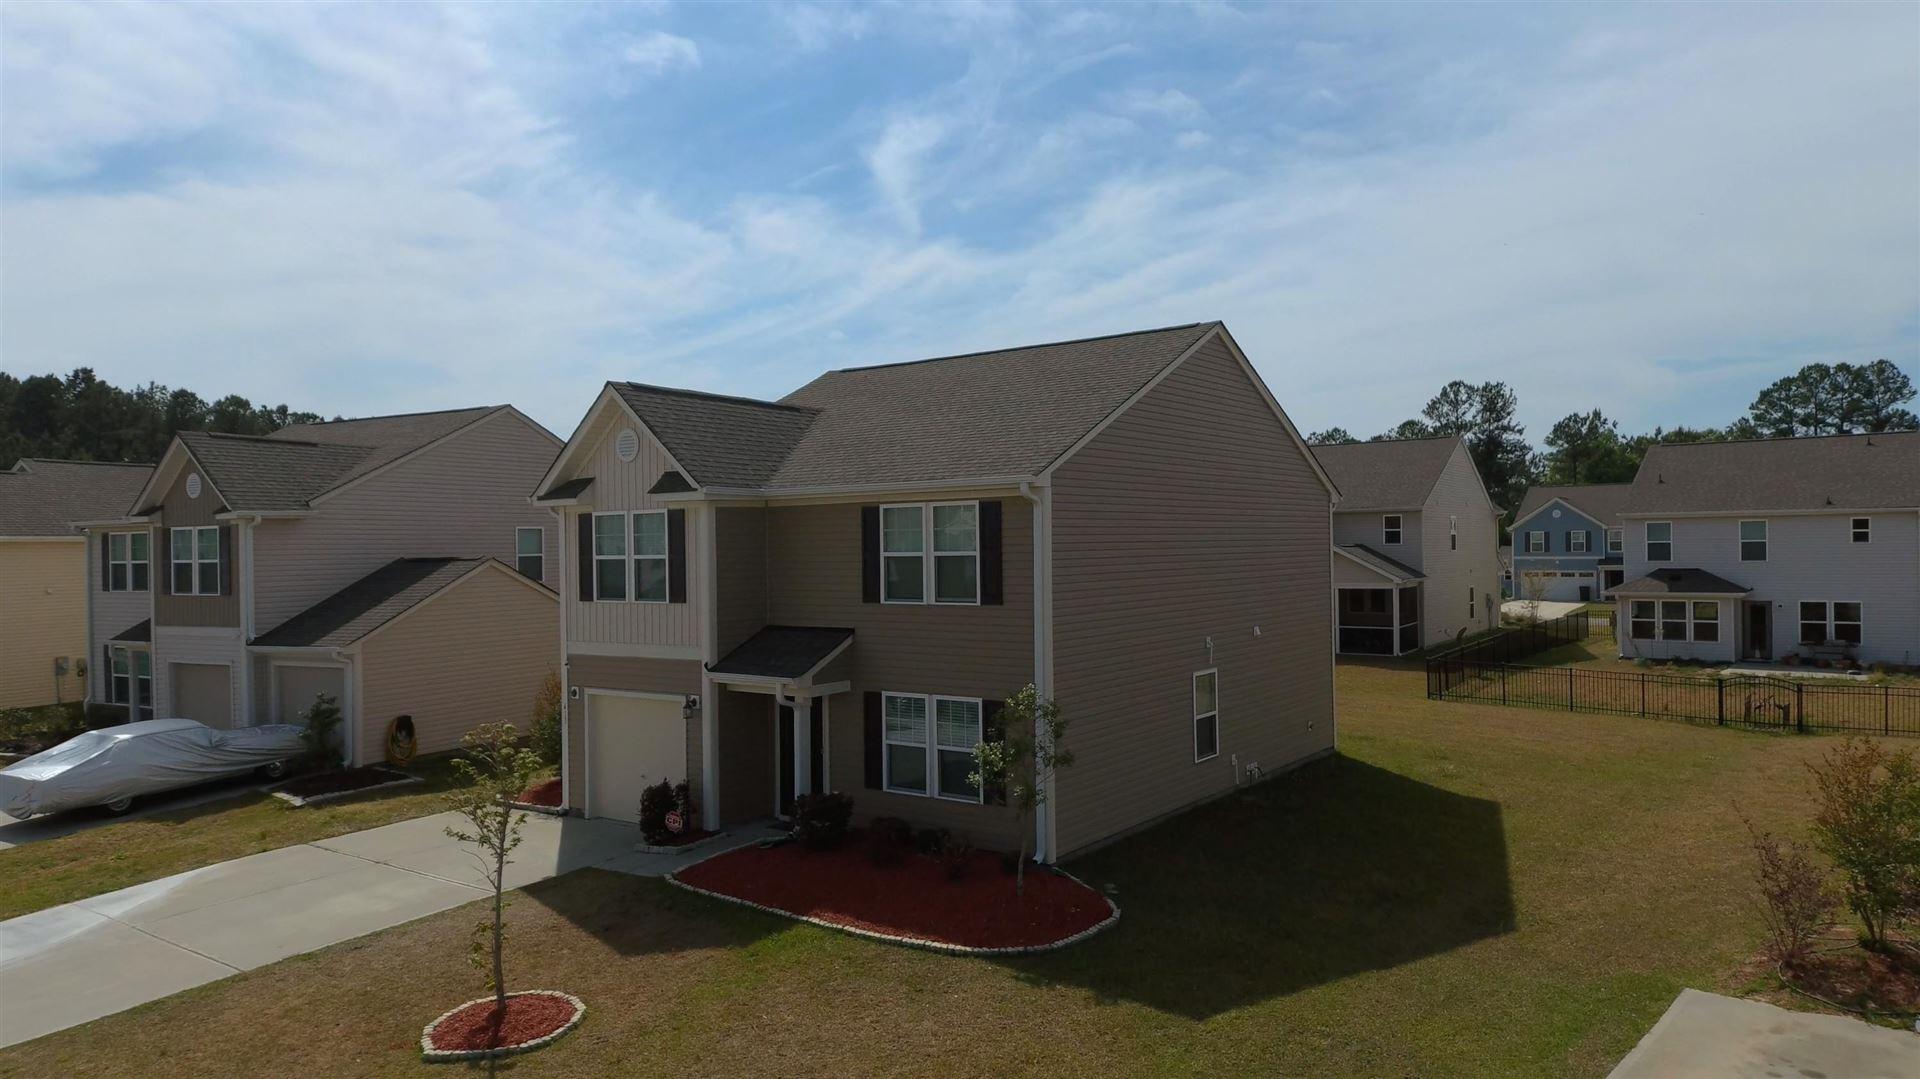 Photo of 413 Thoroughbred Drive, Moncks Corner, SC 29461 (MLS # 21010255)